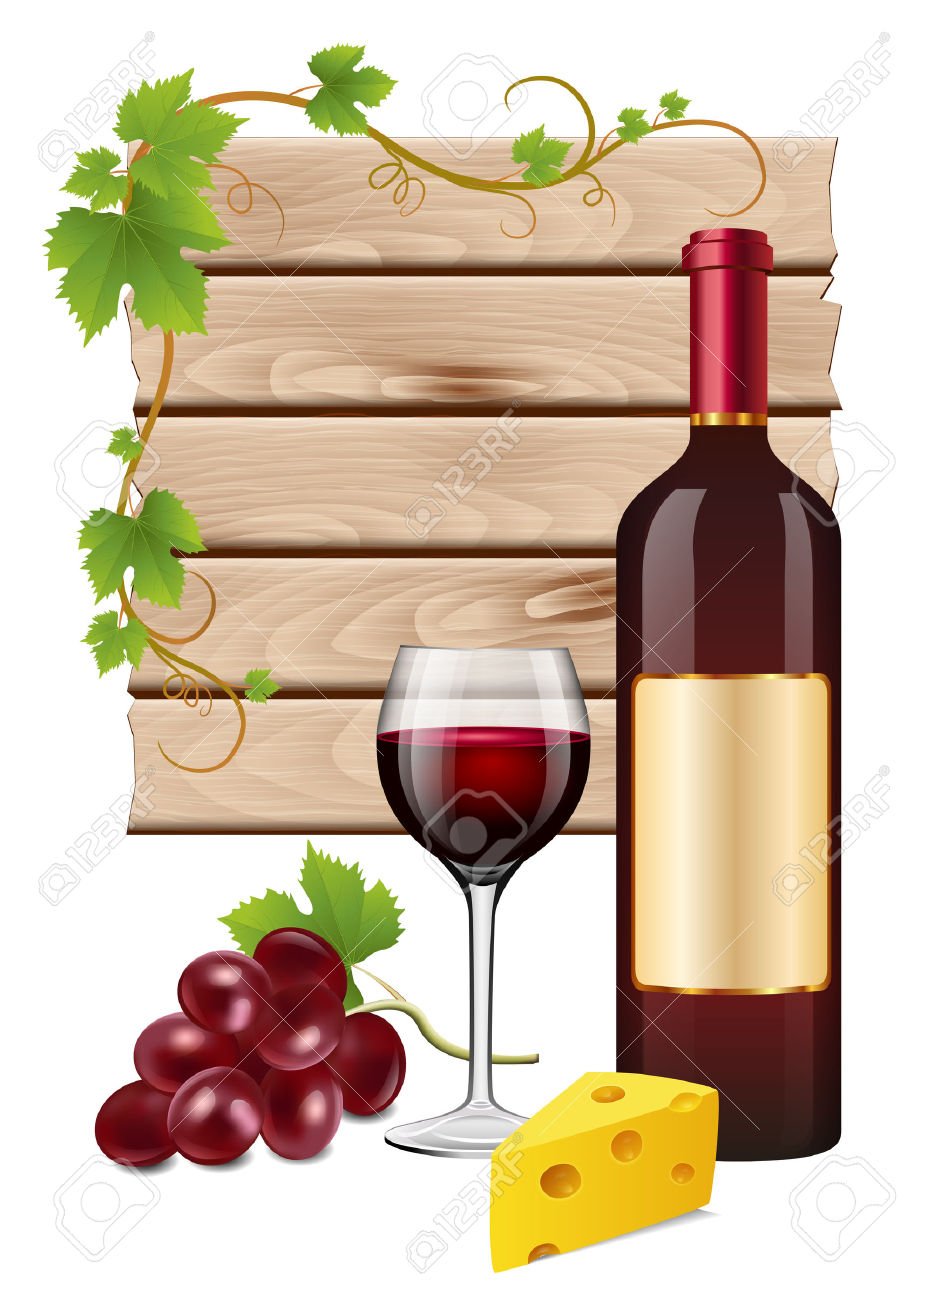 Grapes And Wine Clipart.